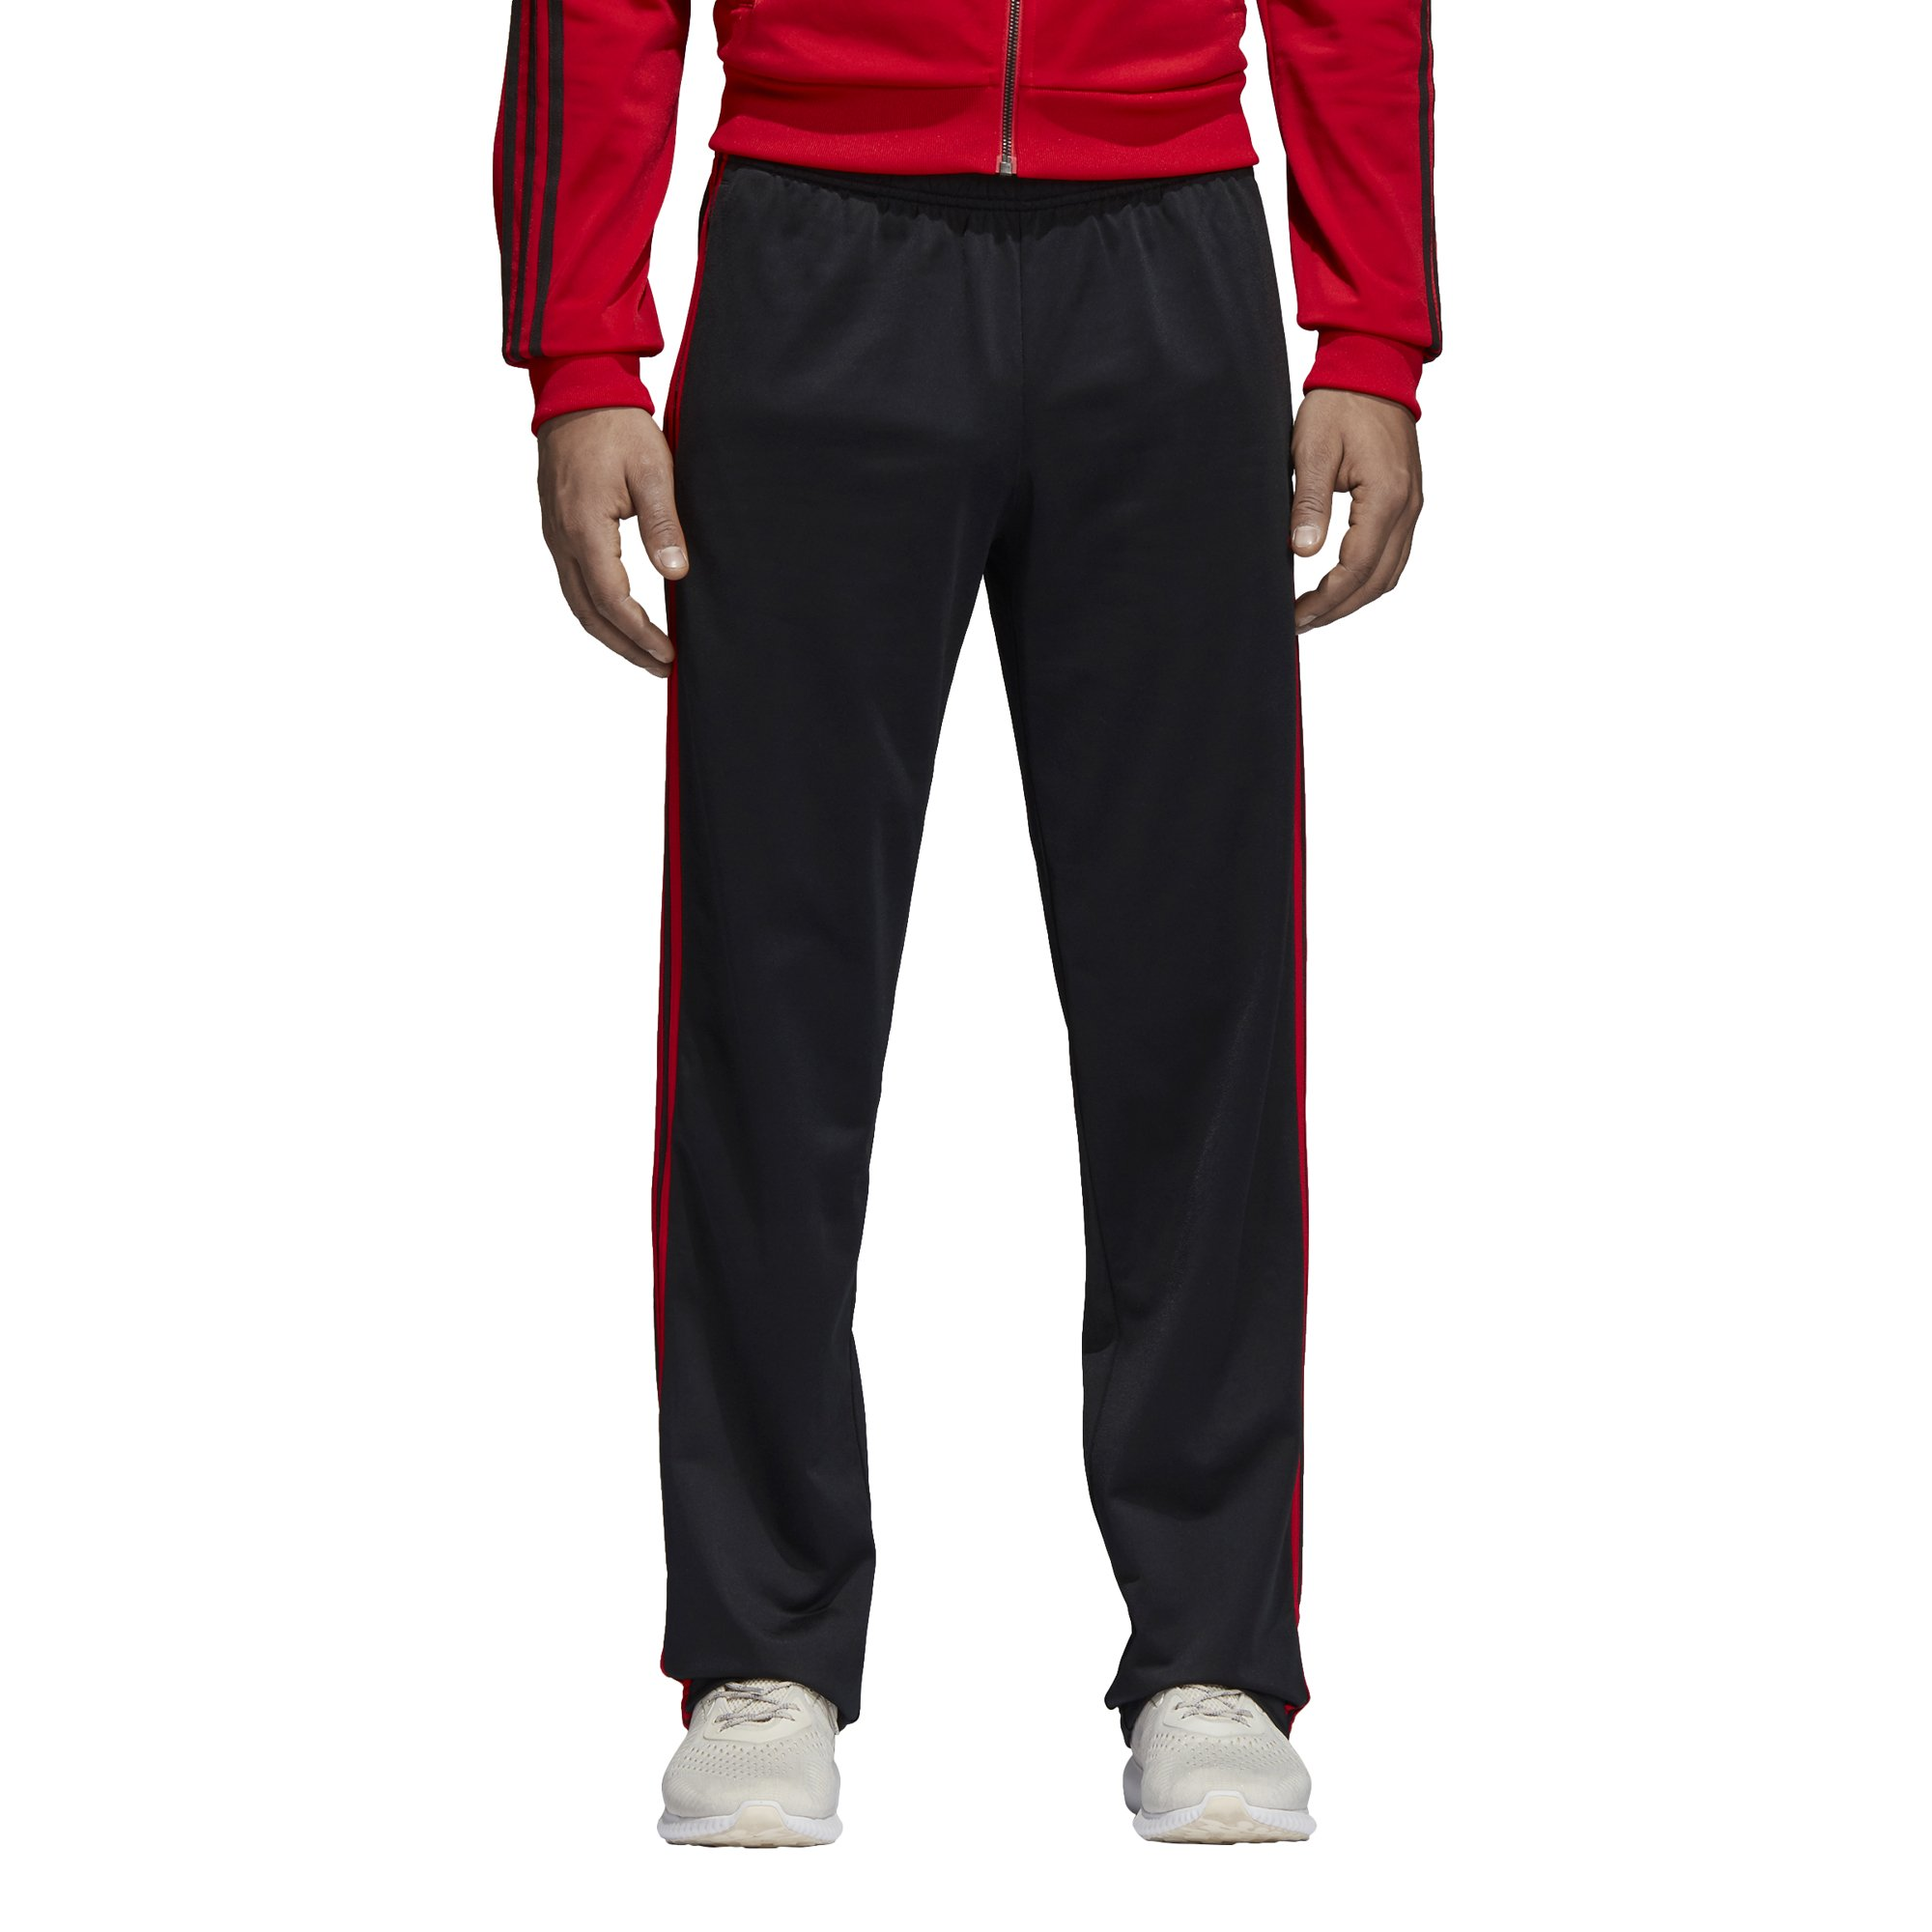 adidas Men's Athletics Essential Tricot 3-Stripe Pants, Black/Scarlet, Small by adidas (Image #1)